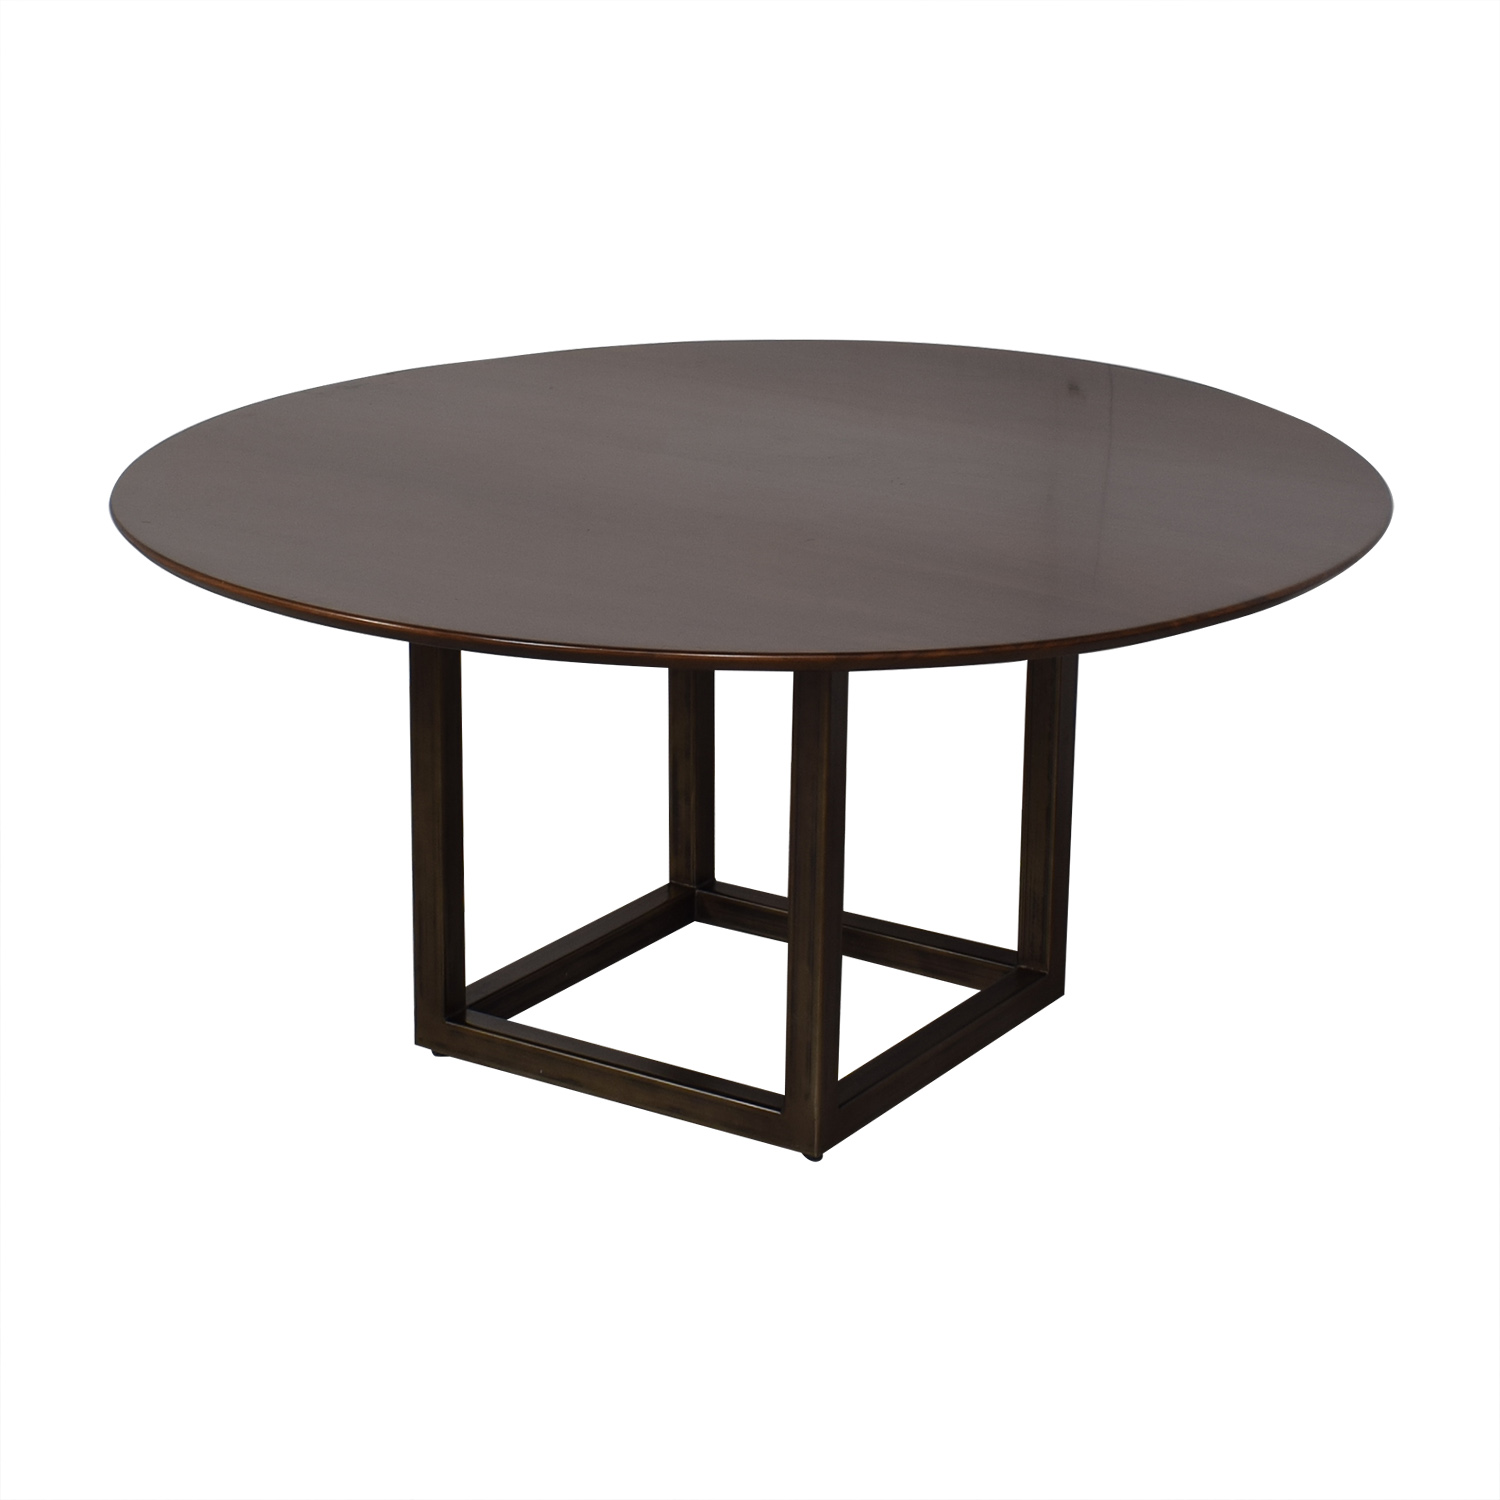 Modern Round Dining Table / Dinner Tables